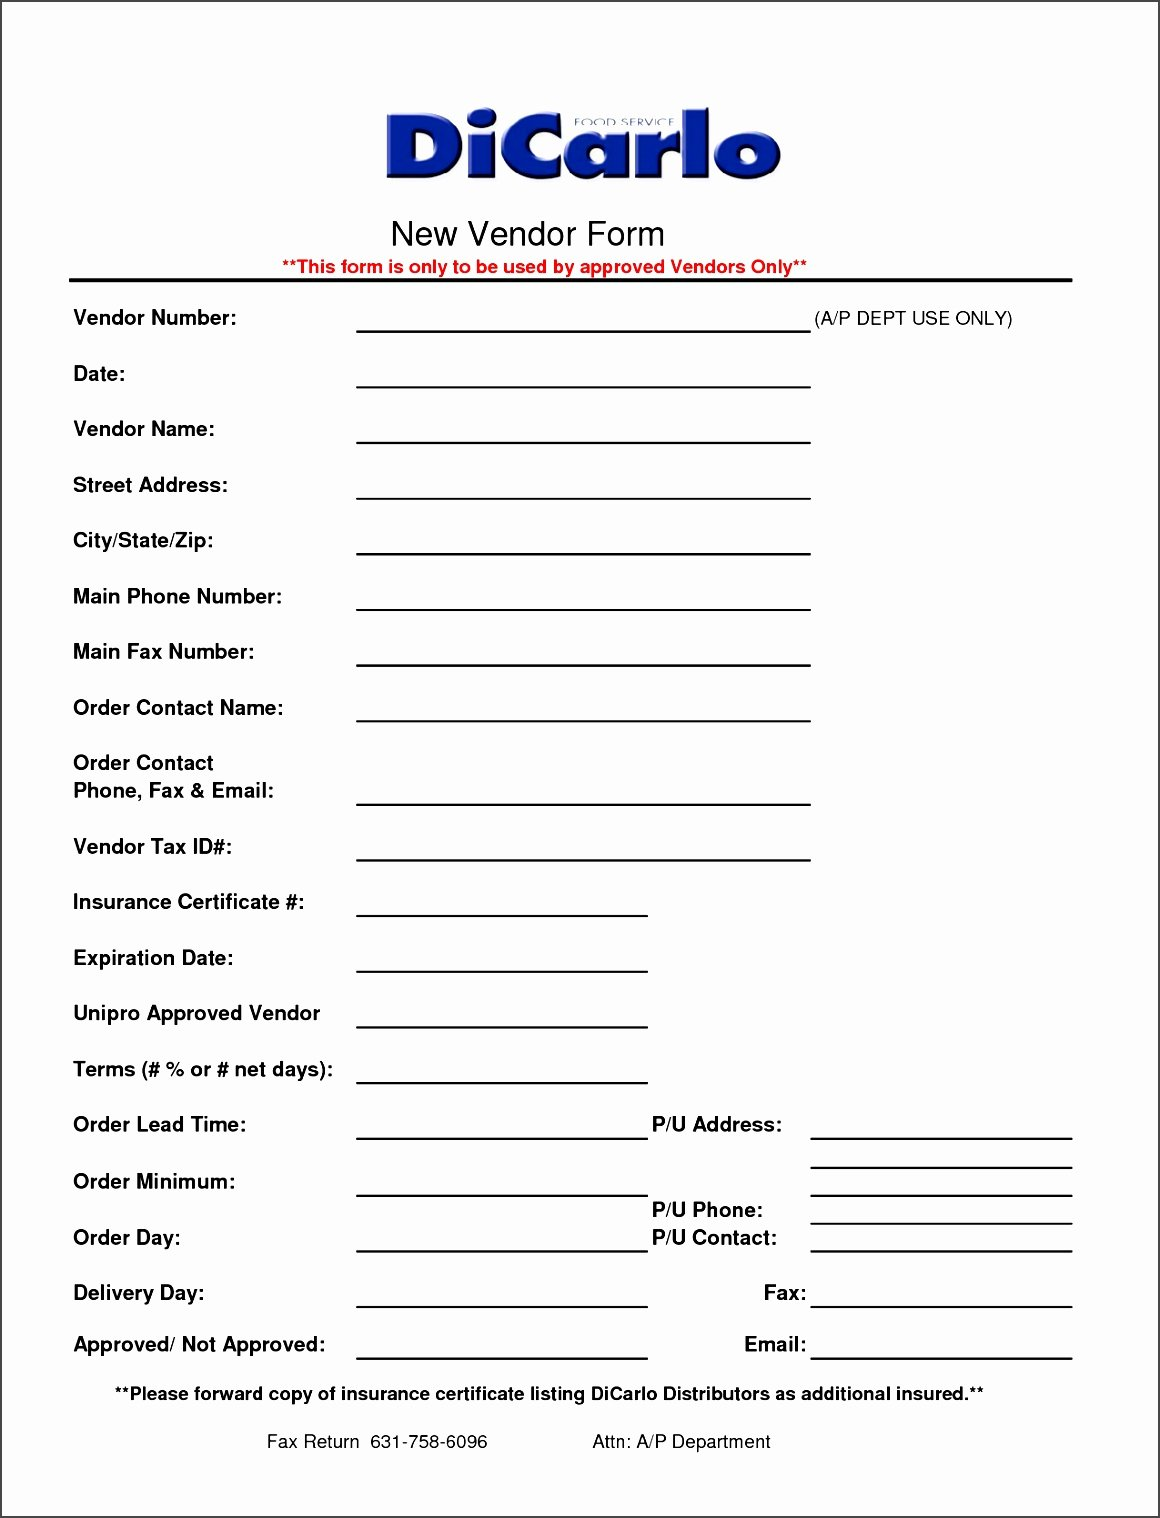 New Vendor form Template Inspirational Supplier Information form Template Yenef Luxury Best S